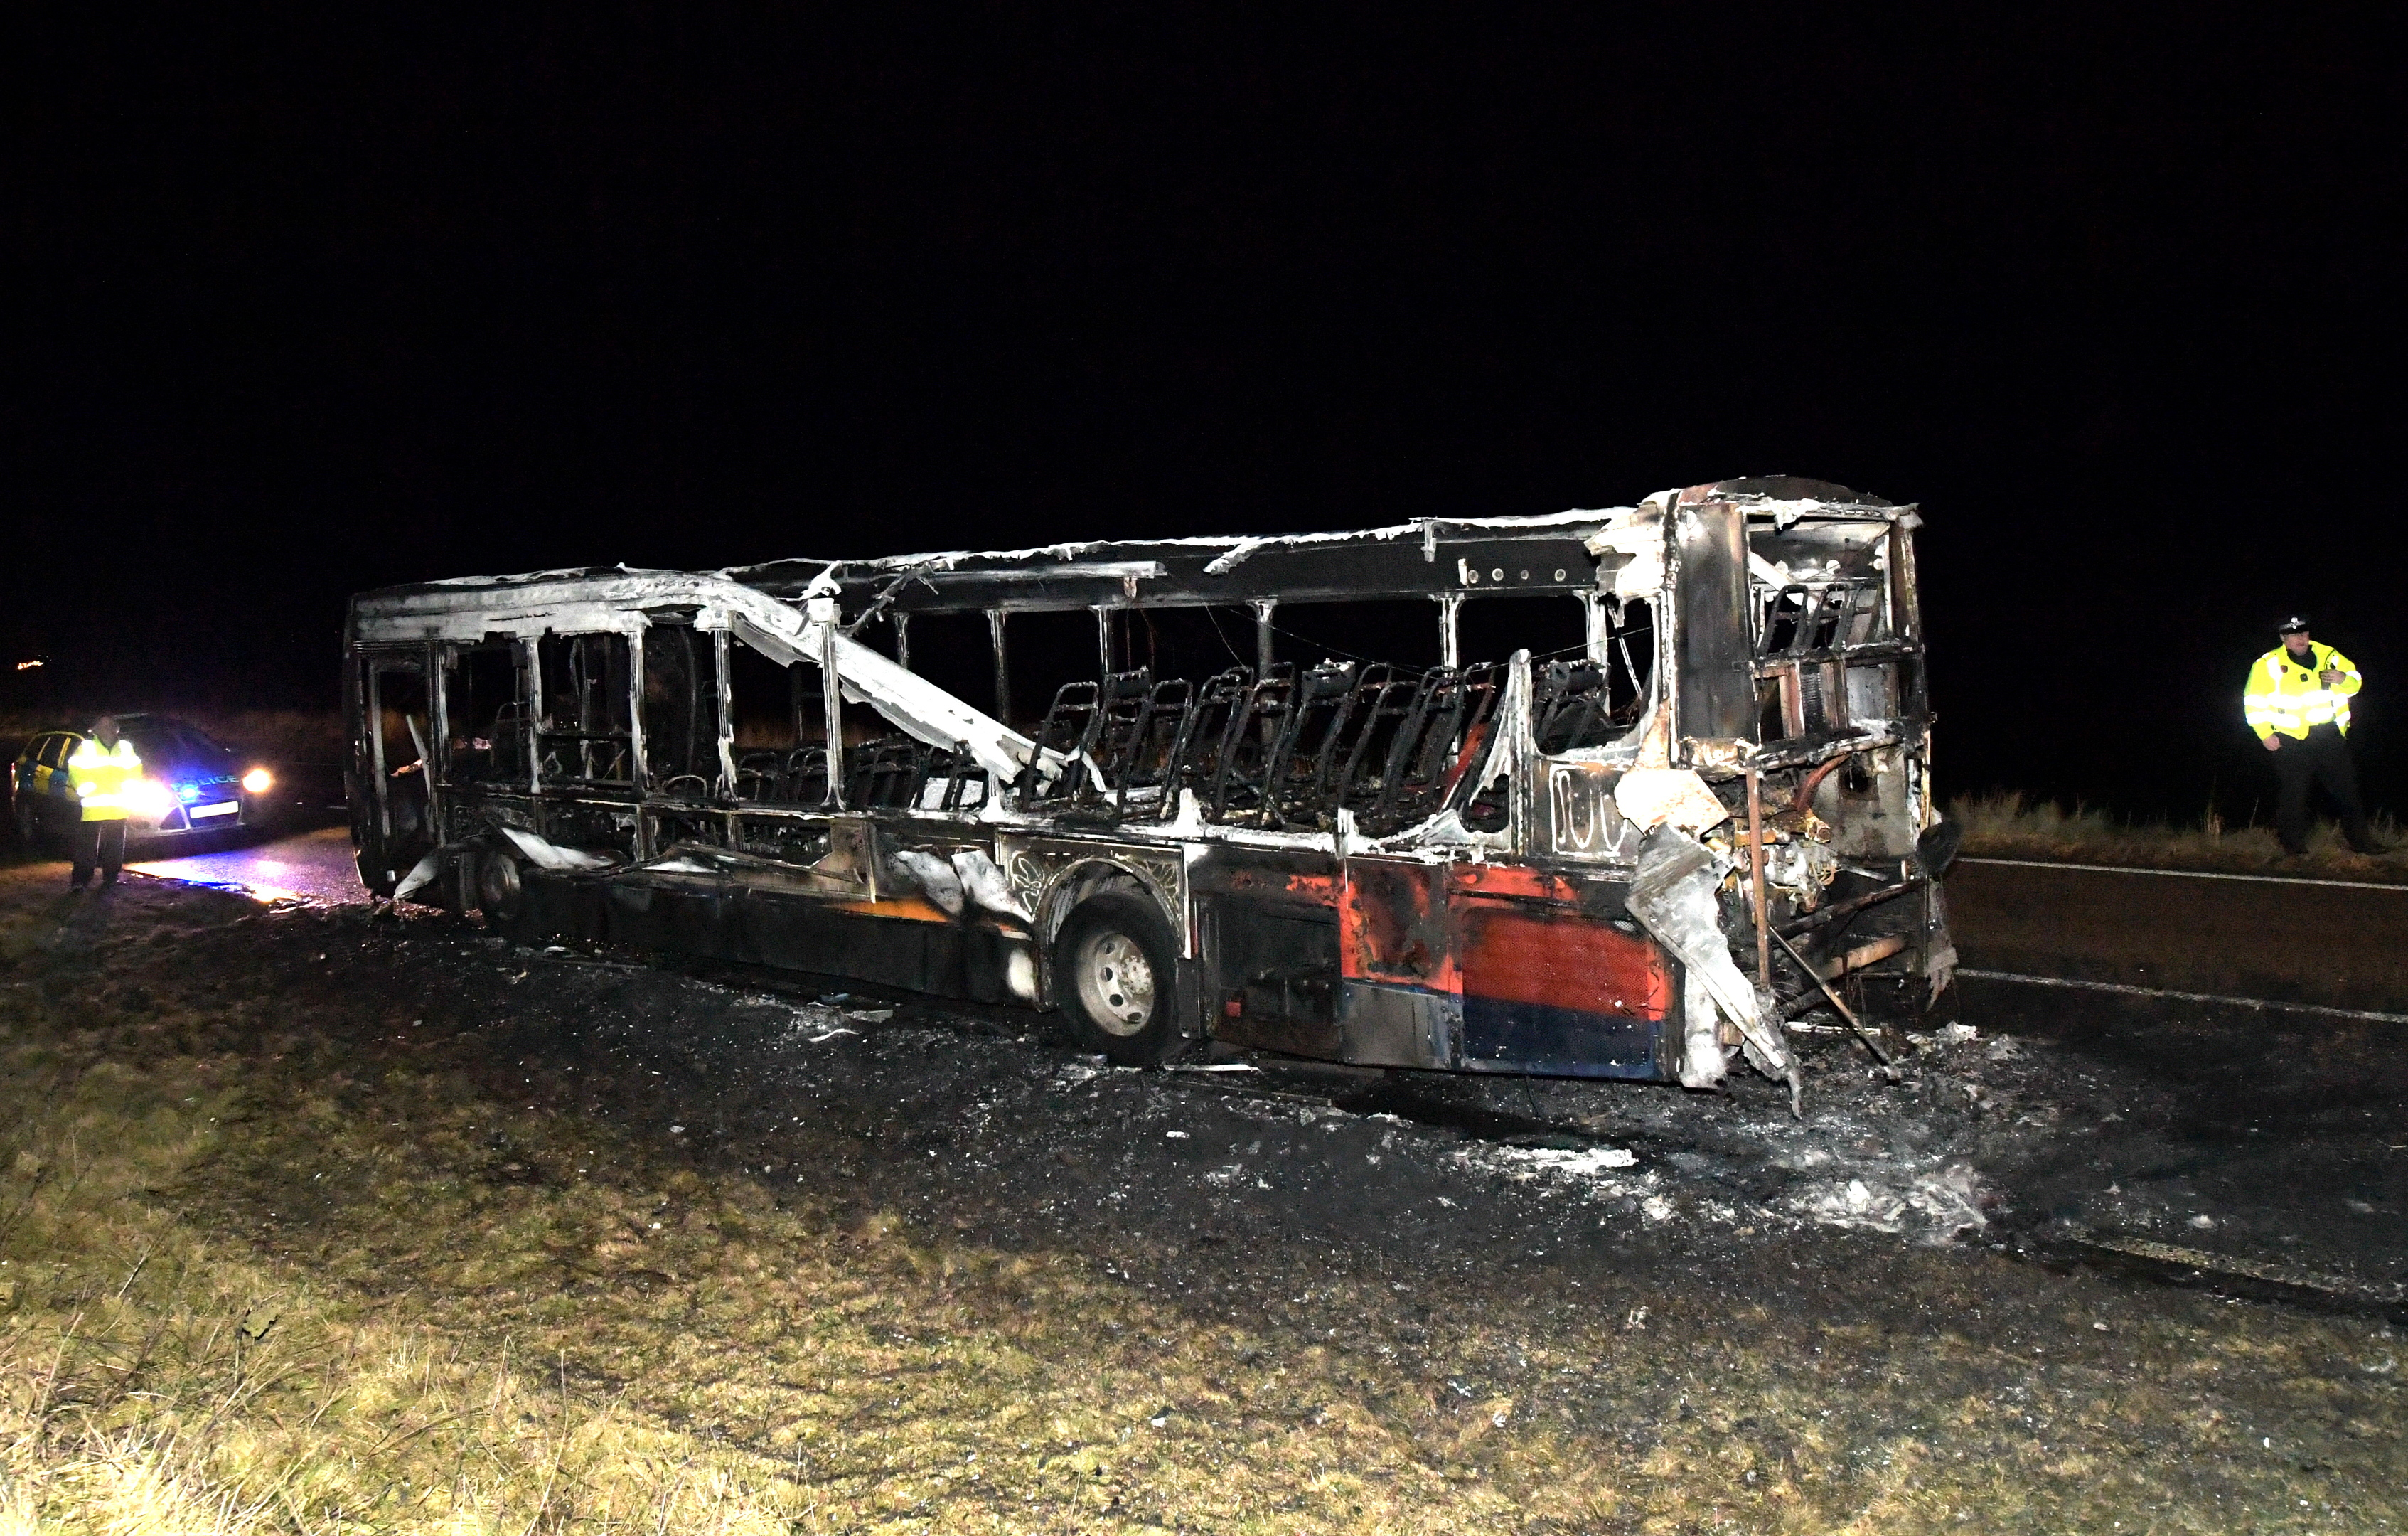 The burnt out shell of a bus which caught fire on the A90 near Stirling Village